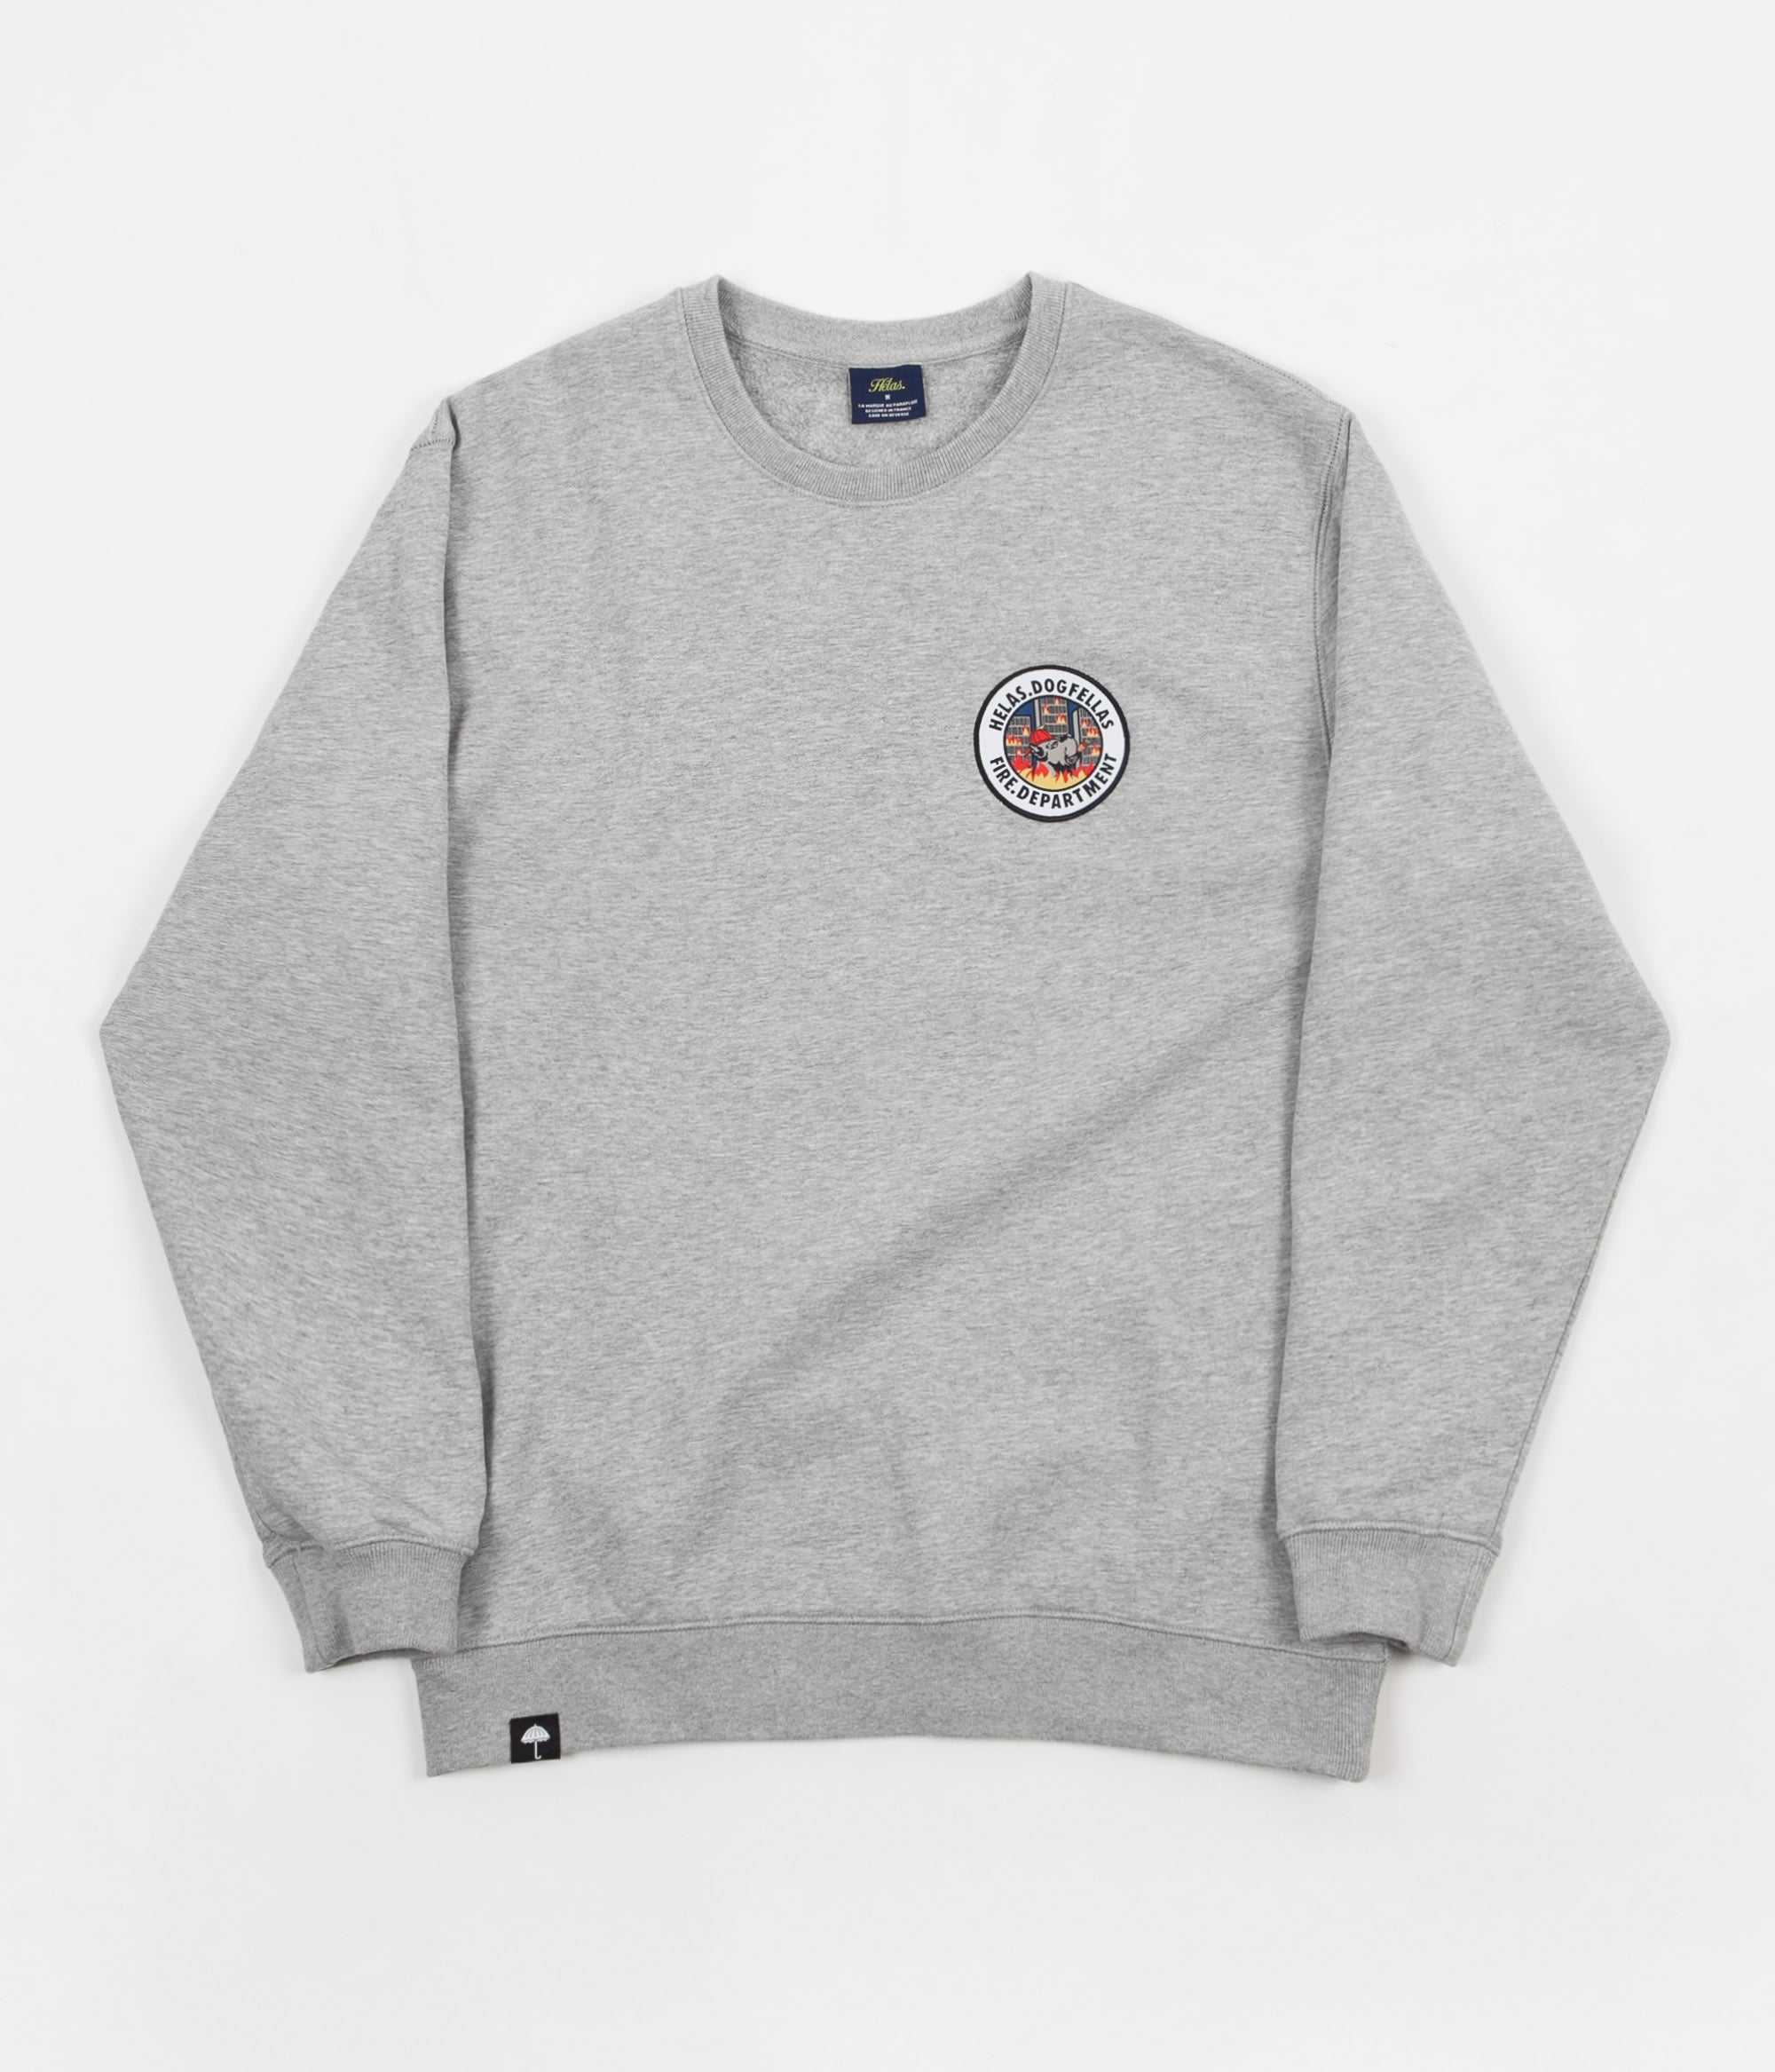 Helas Fire Department Crewneck Sweatshirt - Heather Grey